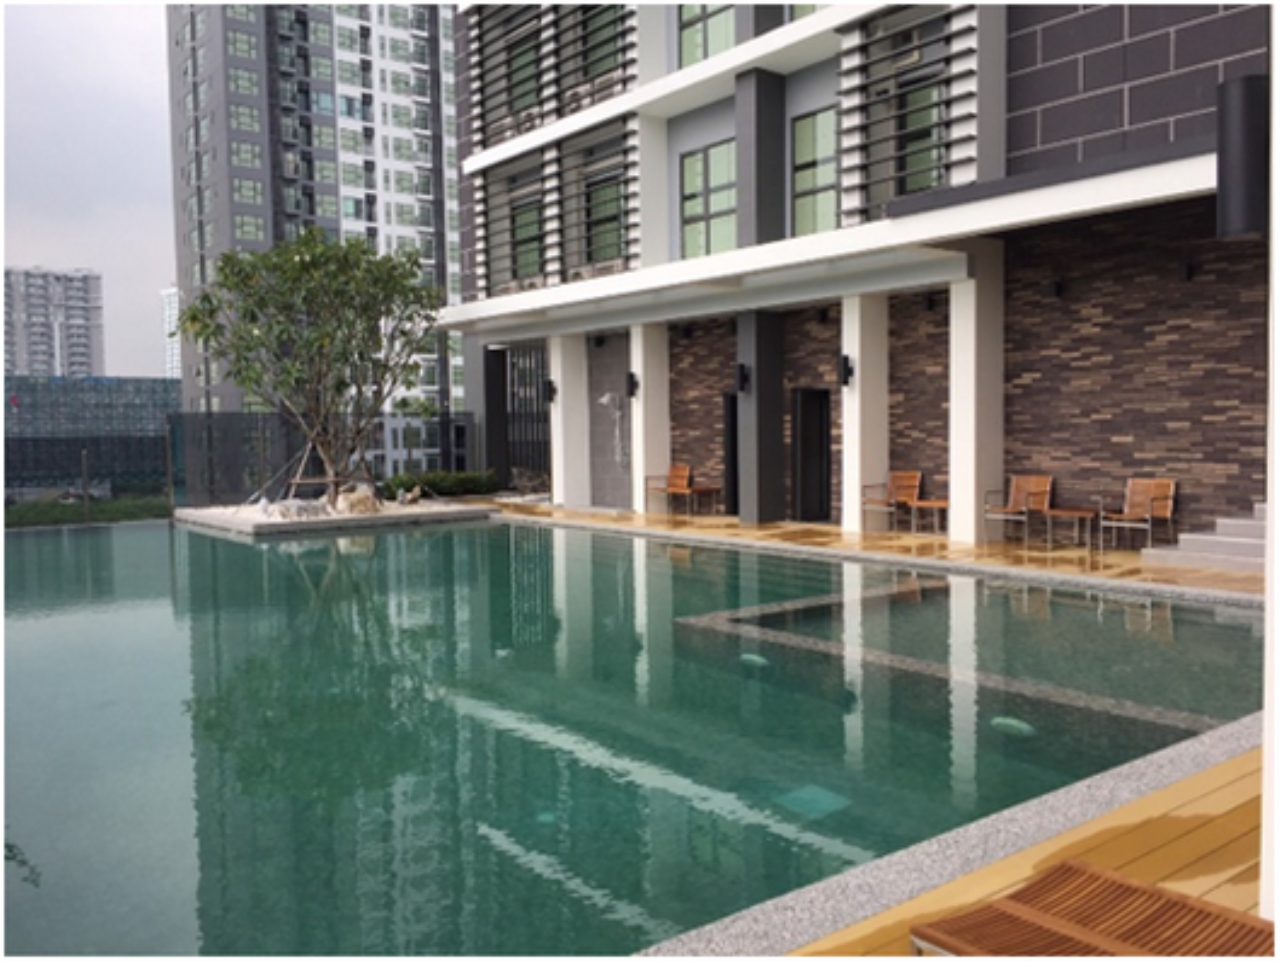 RE/MAX CondoDee Agency's Small Condo @ Asoke - Rama 9 - HOT DEAL! 7